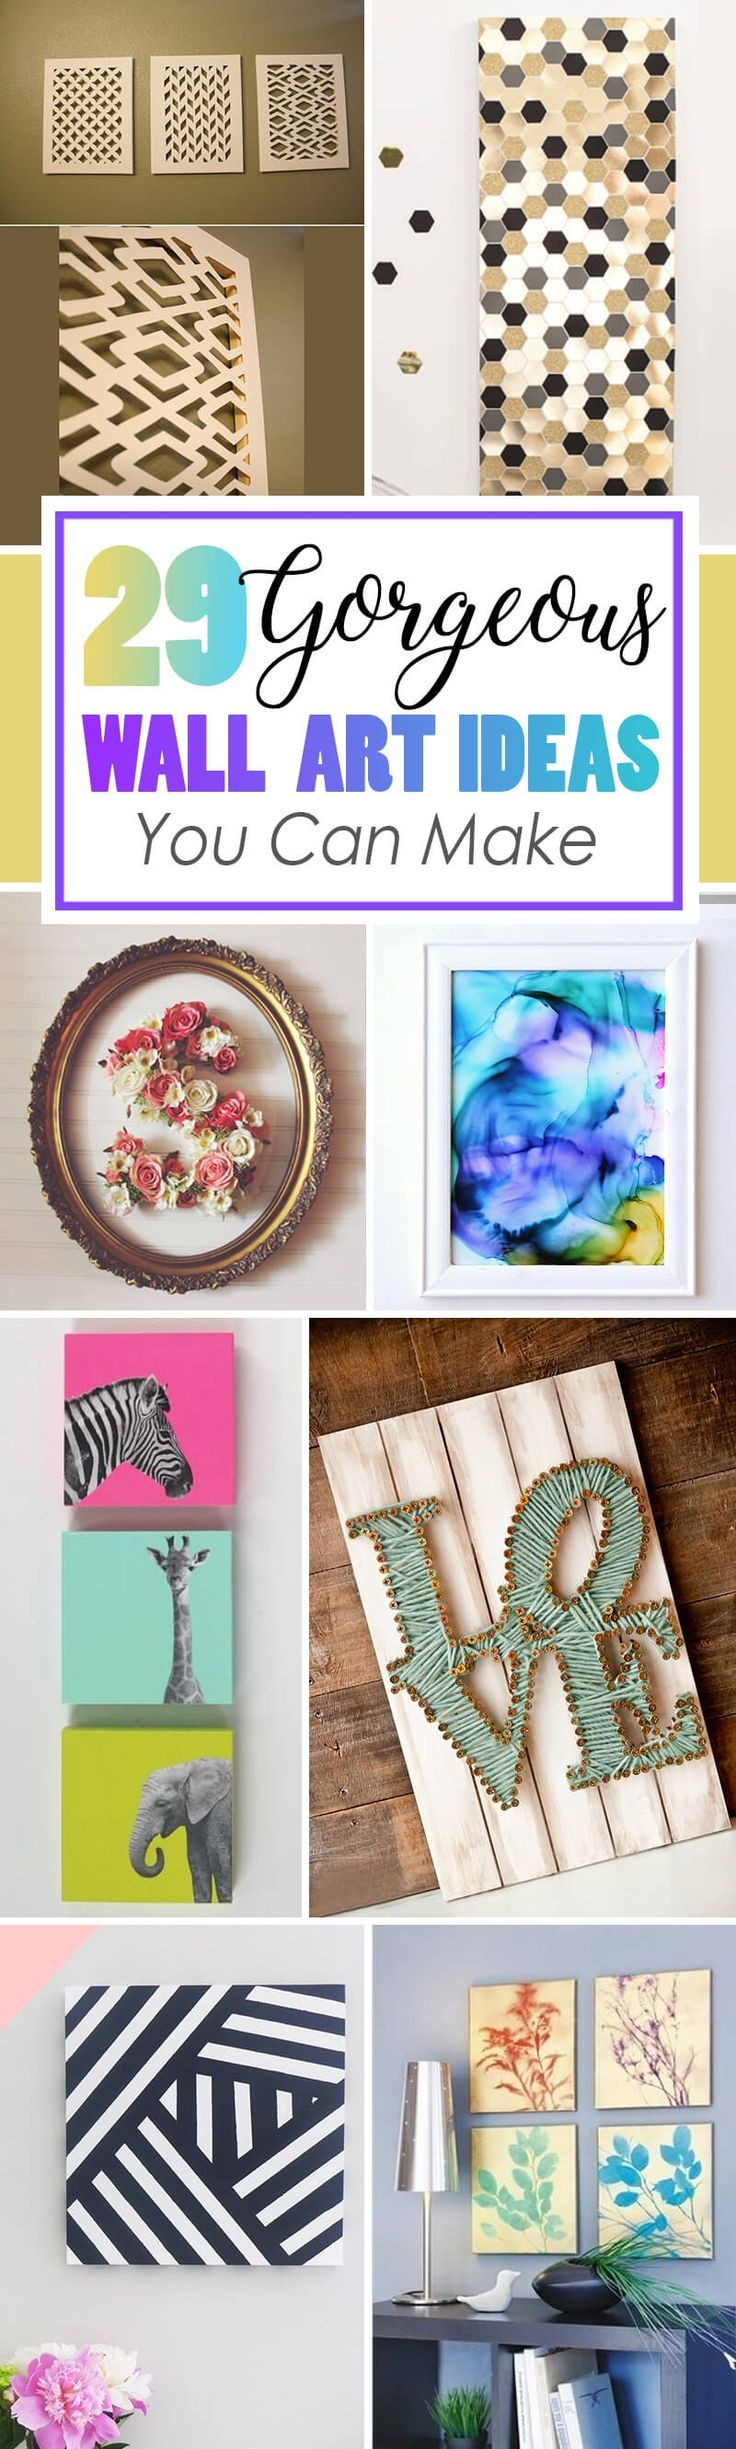 DIY wall art is one of the most fun and inexpensive ways to decorate your home. That's why we've compiled a list of 36 amazing DIY wall art ideas for you to try! This list has projects for all styles and skill levels, so you are sure to find one you can't wait to try. 36 Make-Your-Own Wall Art P...